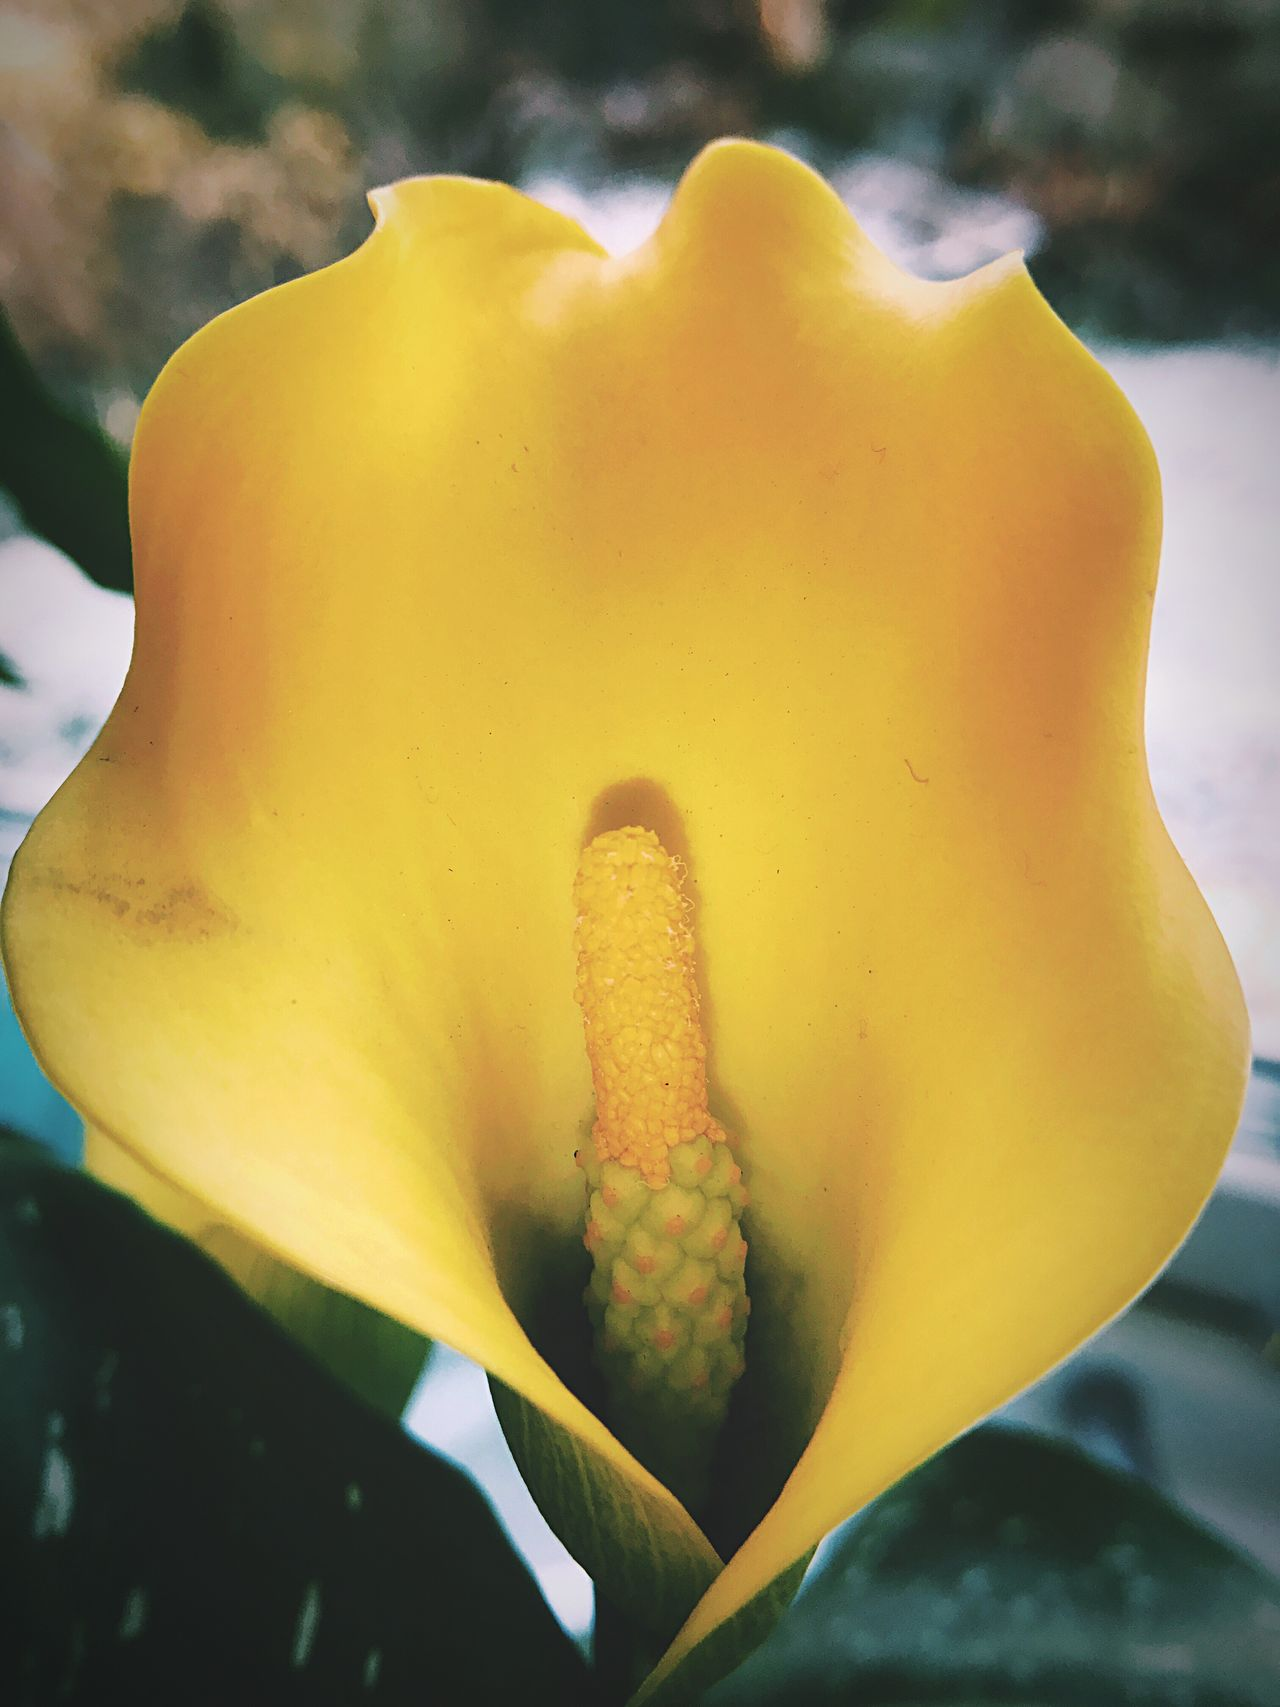 Zantedeschia in bloom Flower Petal Nature Growth Beauty In Nature Fragility Freshness Flower Head Plant Yellow Close-up Outdoors Stamen No People Day Blooming Springtime Flower Photography Flowers, Nature And Beauty Flower Collection Sunrise Flowers,Plants & Garden Plants Flowers Flowerporn